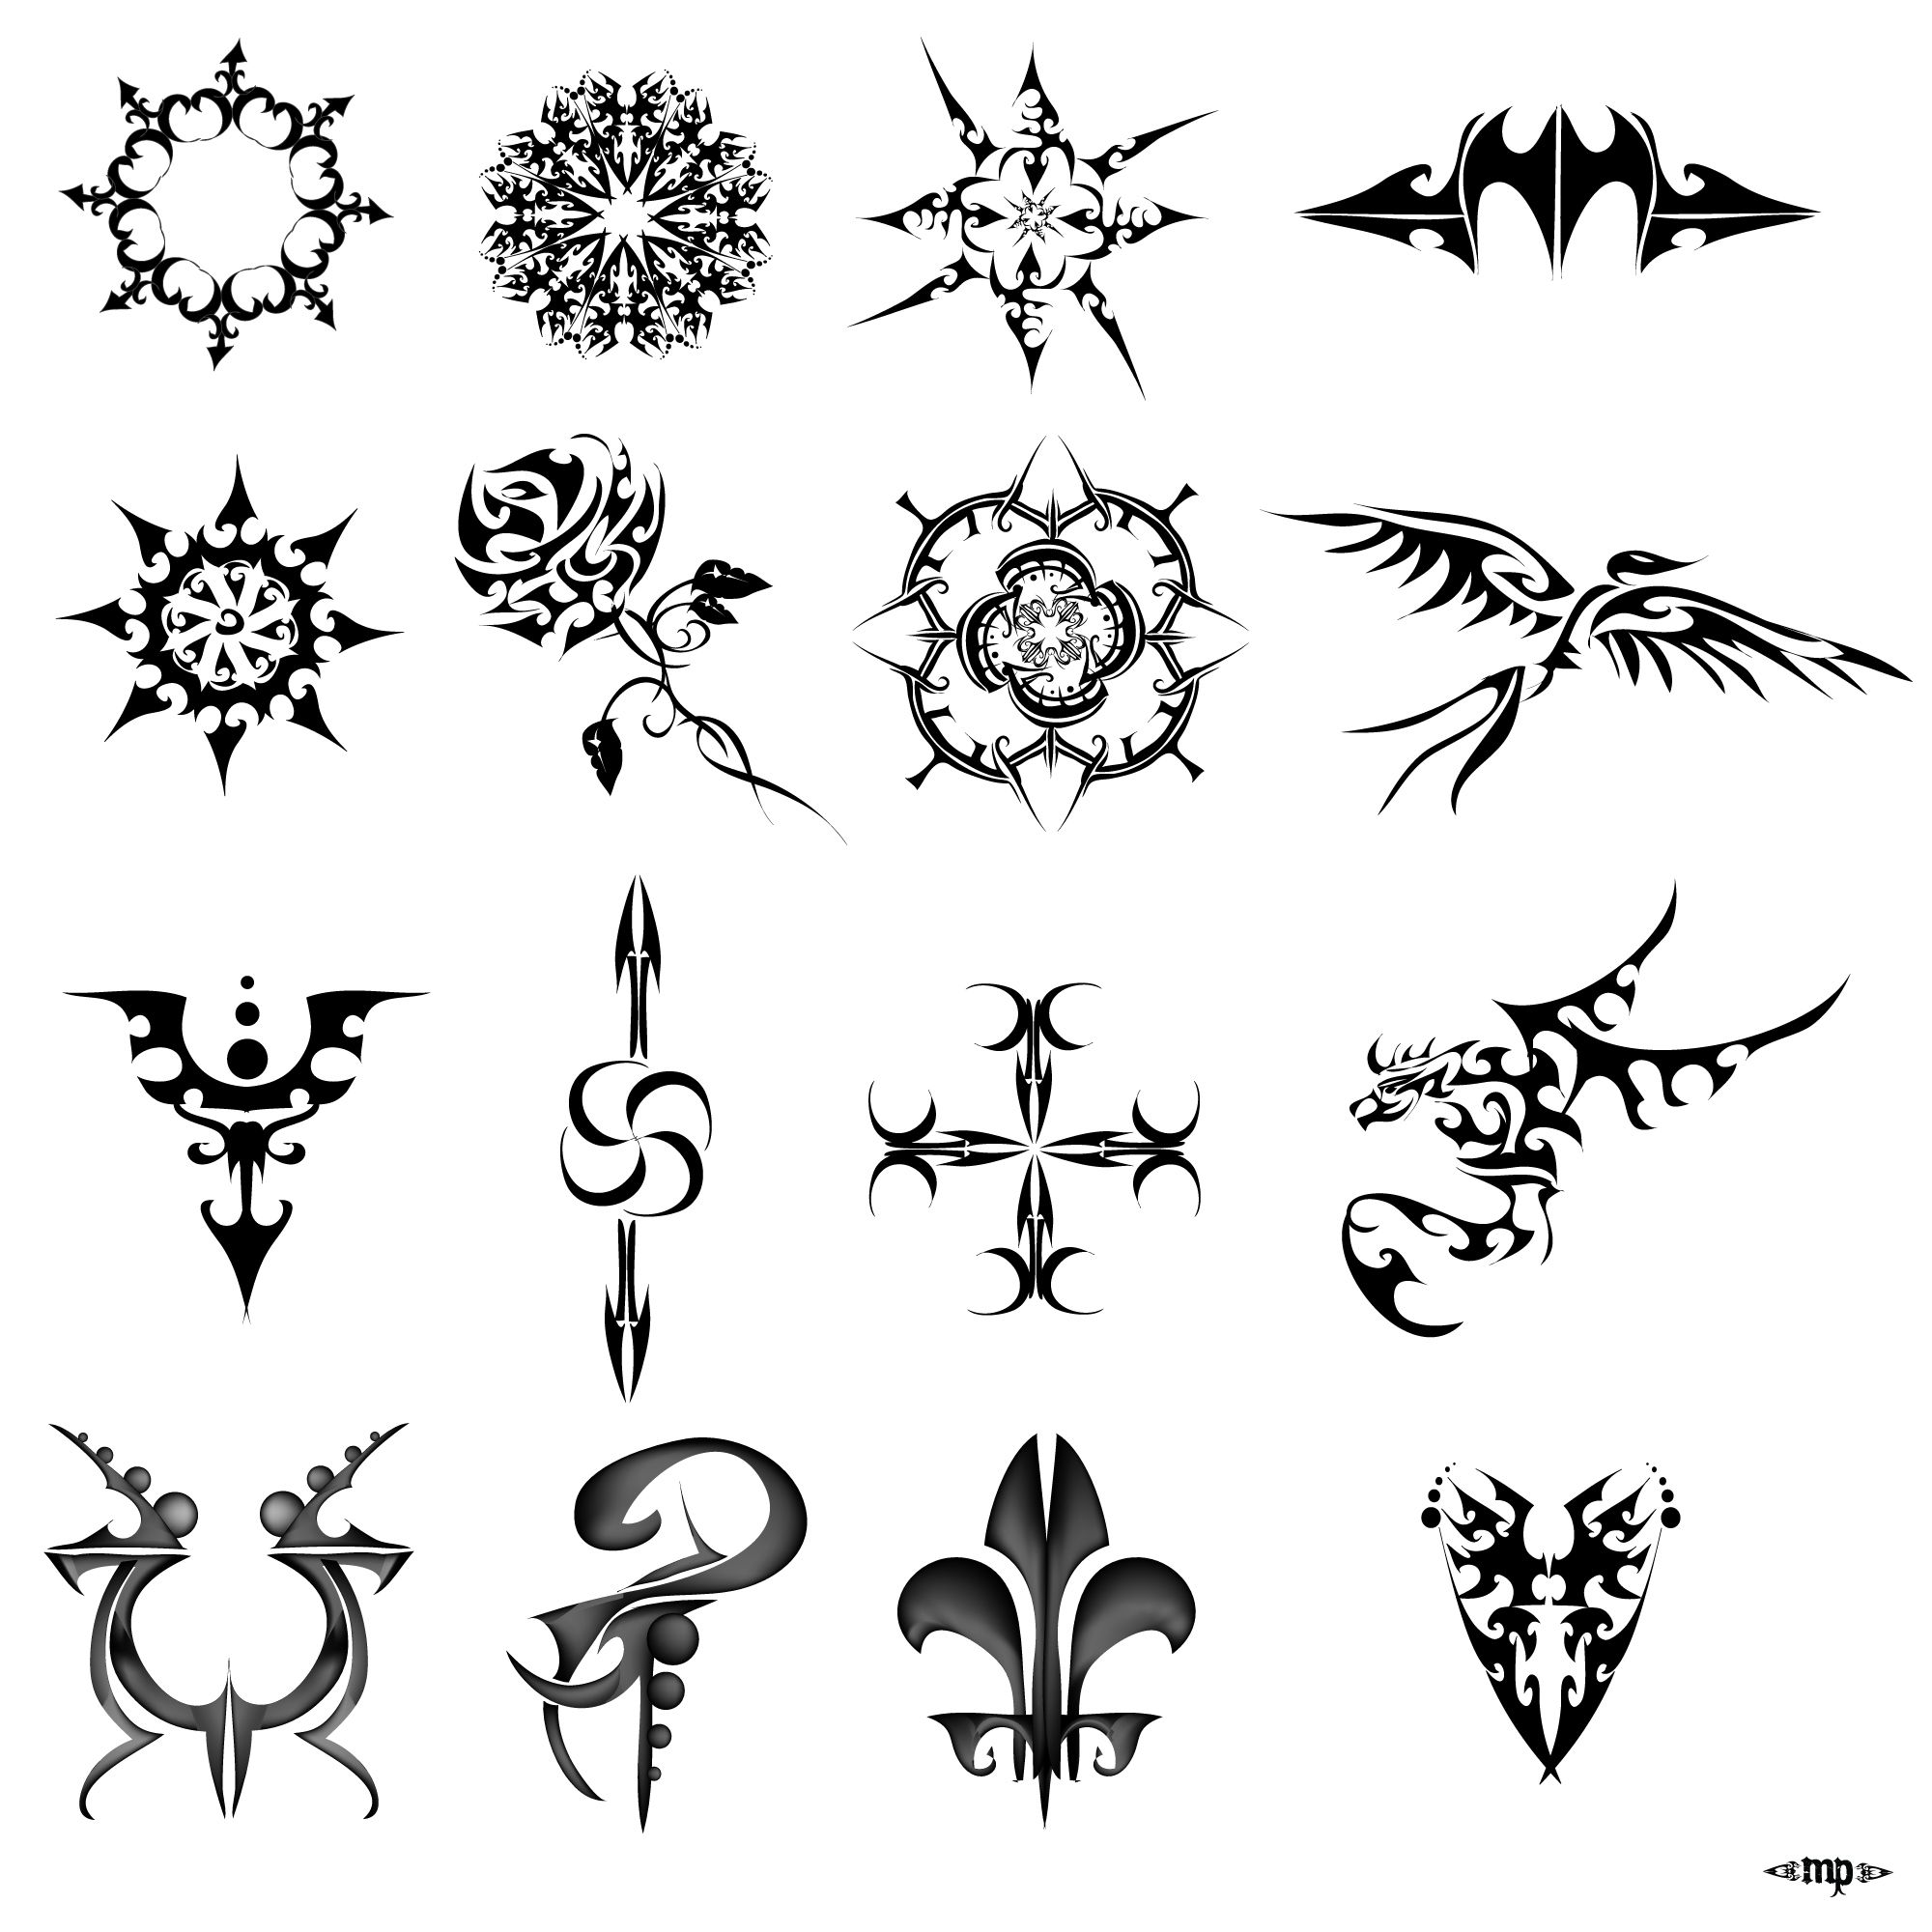 Cool chinese symbol tattoos images symbol and sign ideas symbols tattoo ideas choice image symbol and sign ideas tattoo designs google keress tat pinterest symbols biocorpaavc Images